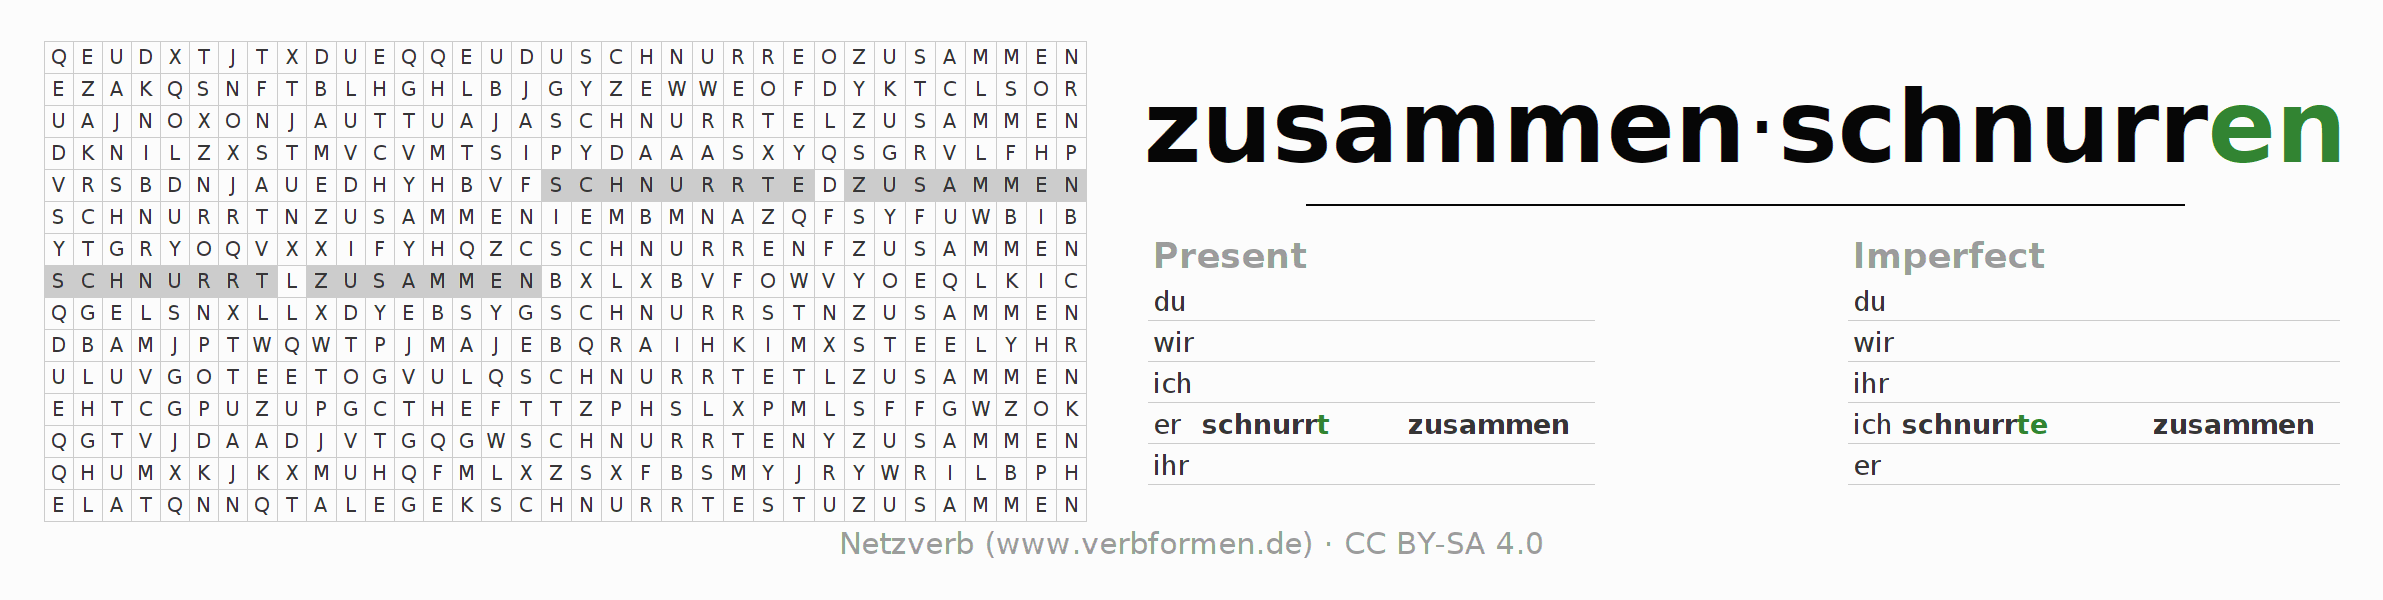 Word search puzzle for the conjugation of the verb zusammenschnurren